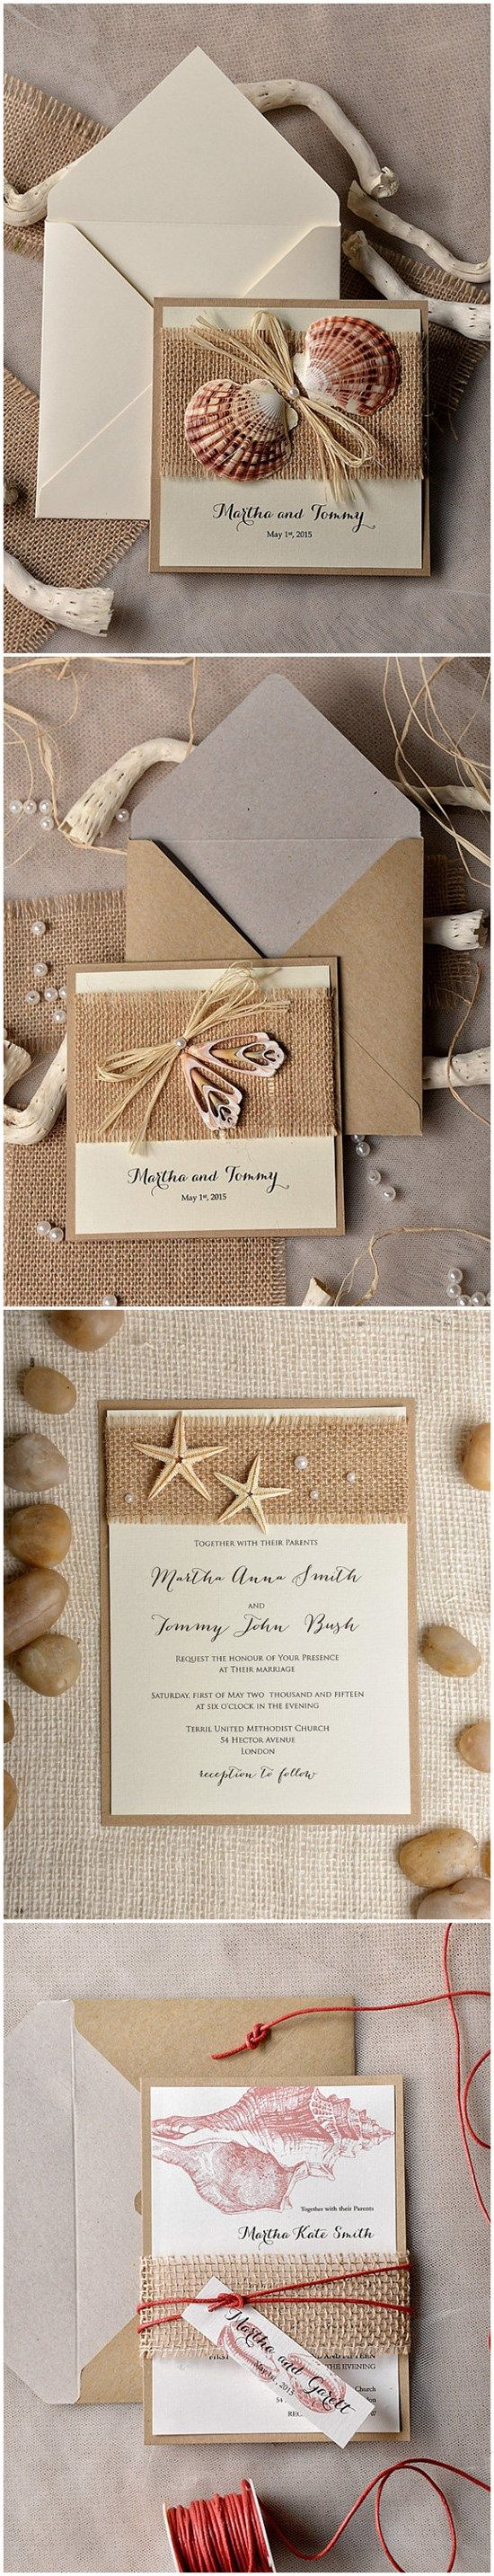 lotus flower wedding invitations%0A TOP    Chic Rustic Wedding Invitations from  lovepolkadots